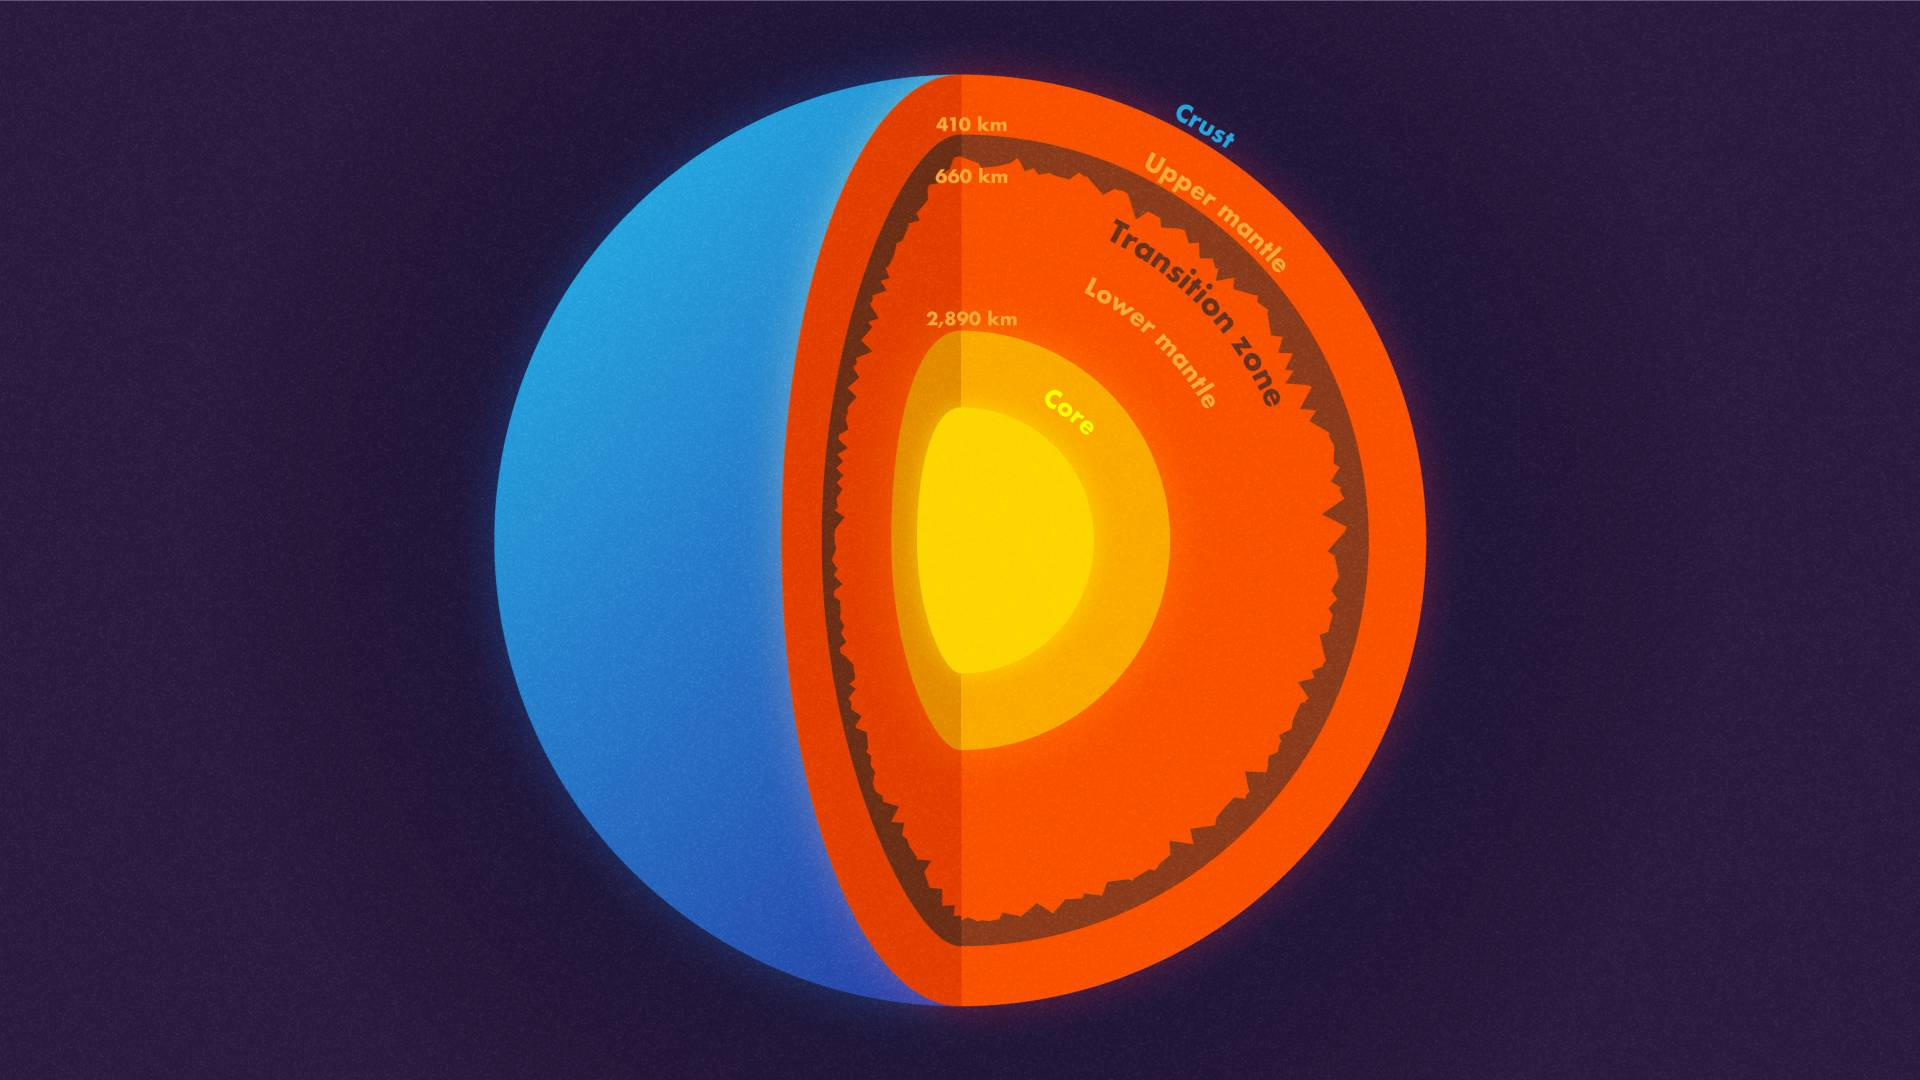 Graphic showing the Transition Zone inside the Earth